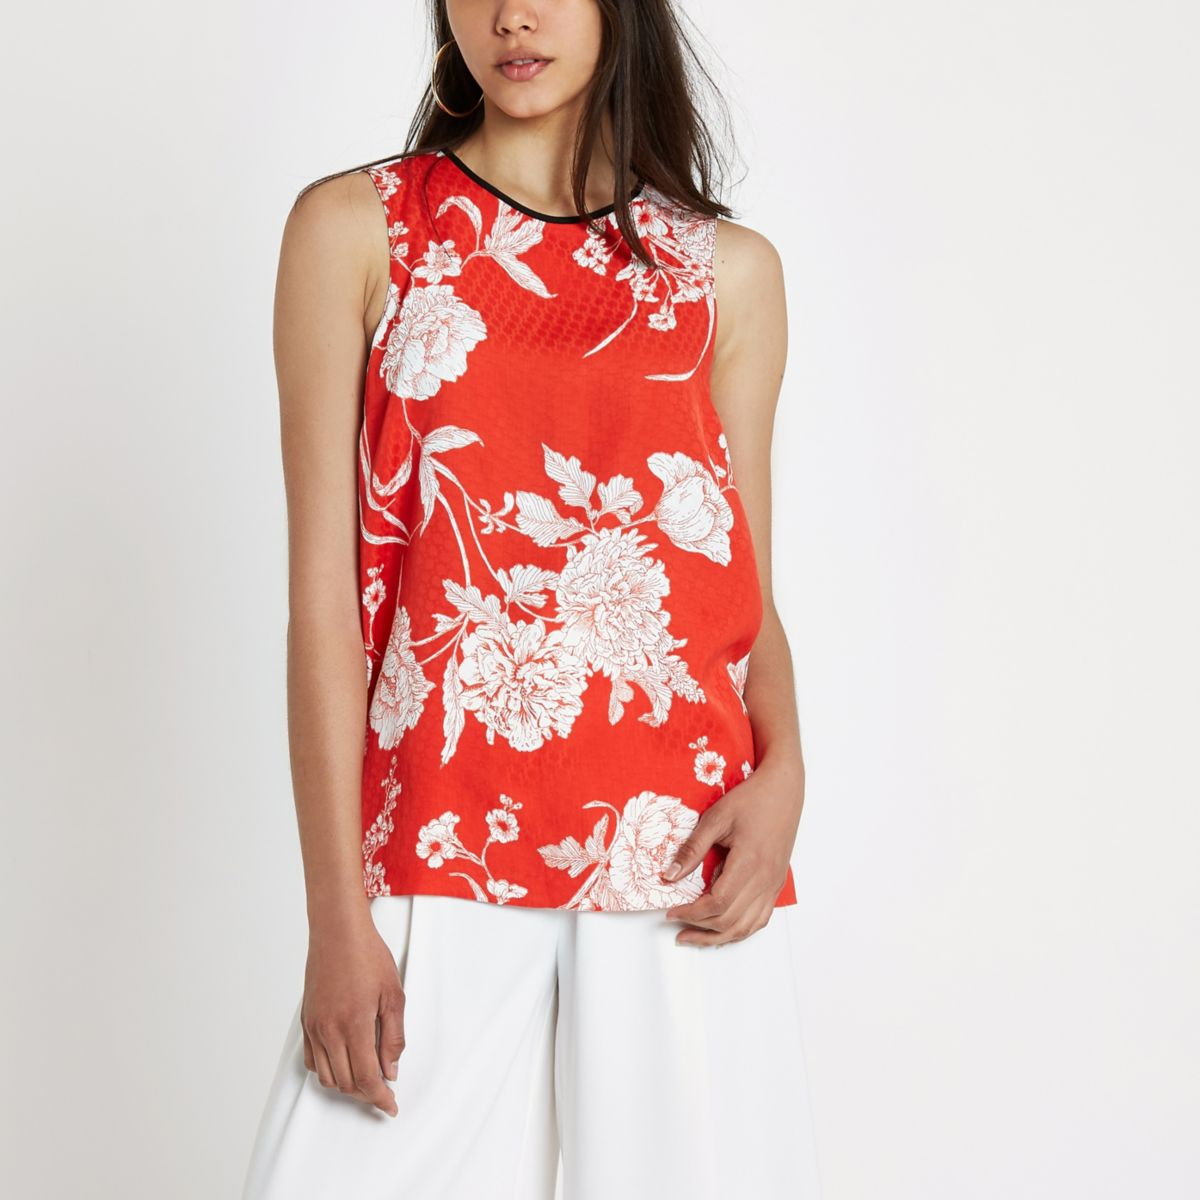 Red floral jacquard sleeveless top